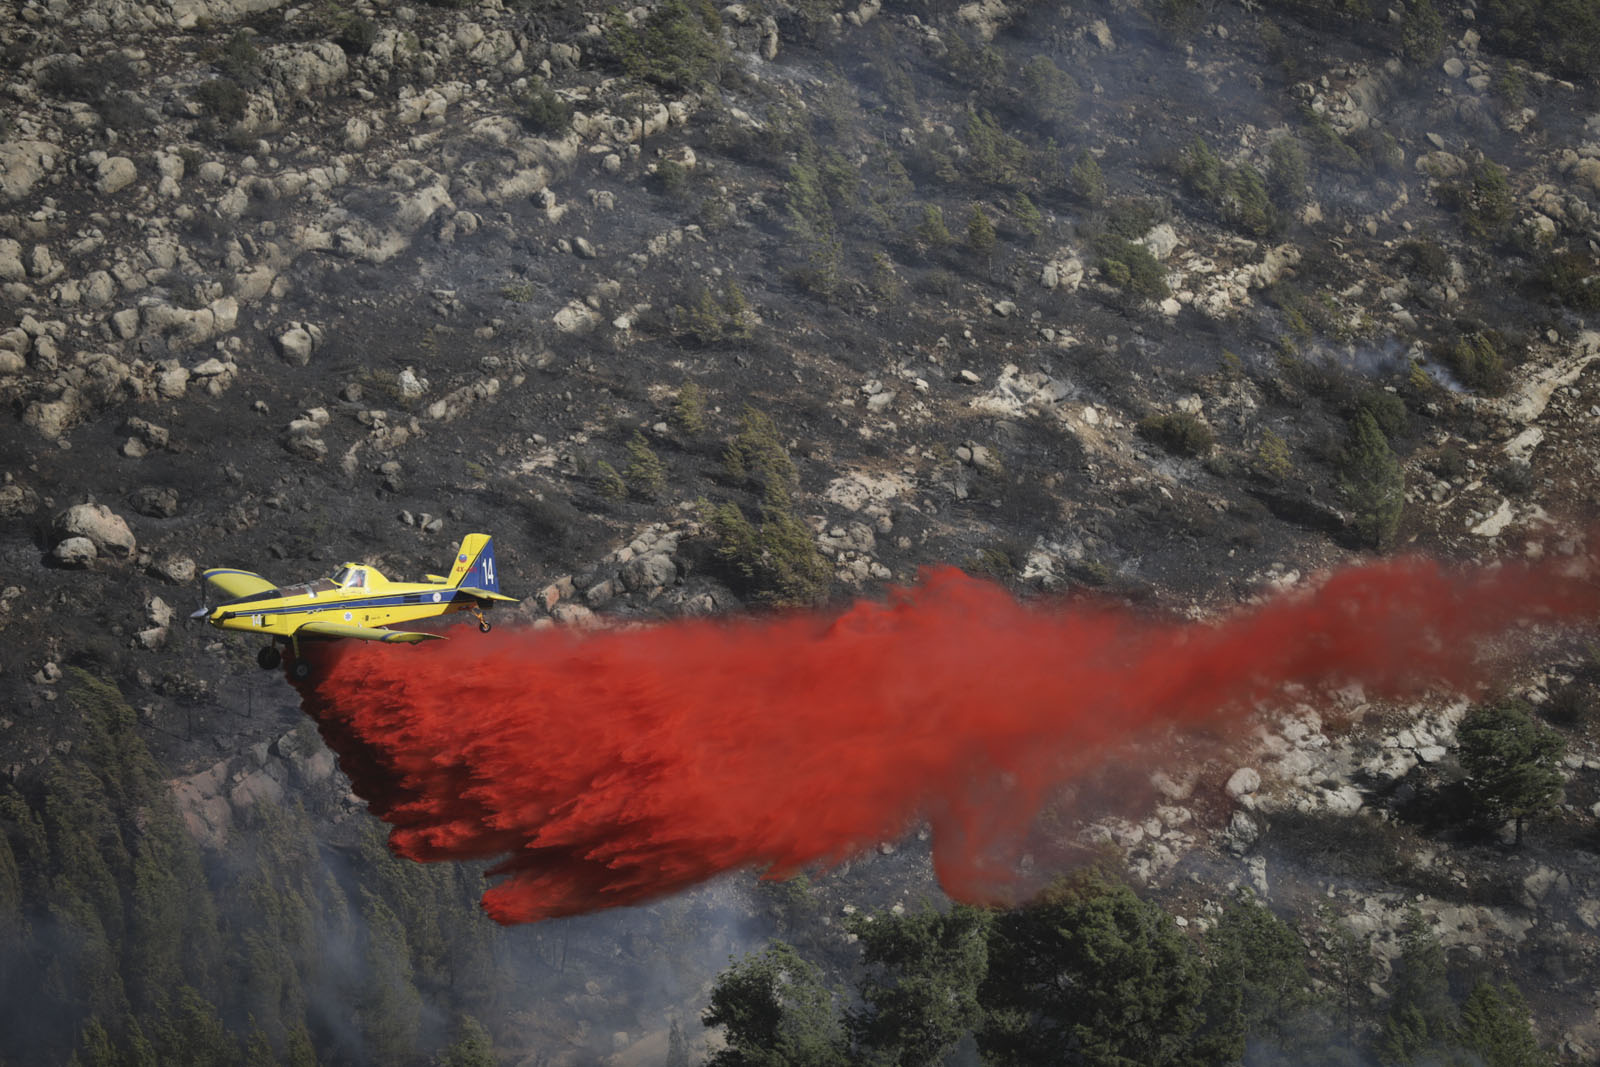 Israeli firefighter aircraft try to extinguish a forest fire near Neve Ilan, outside of Jerusalem on November 24, 2016. Photo by Yonatan Sindel/Flash90